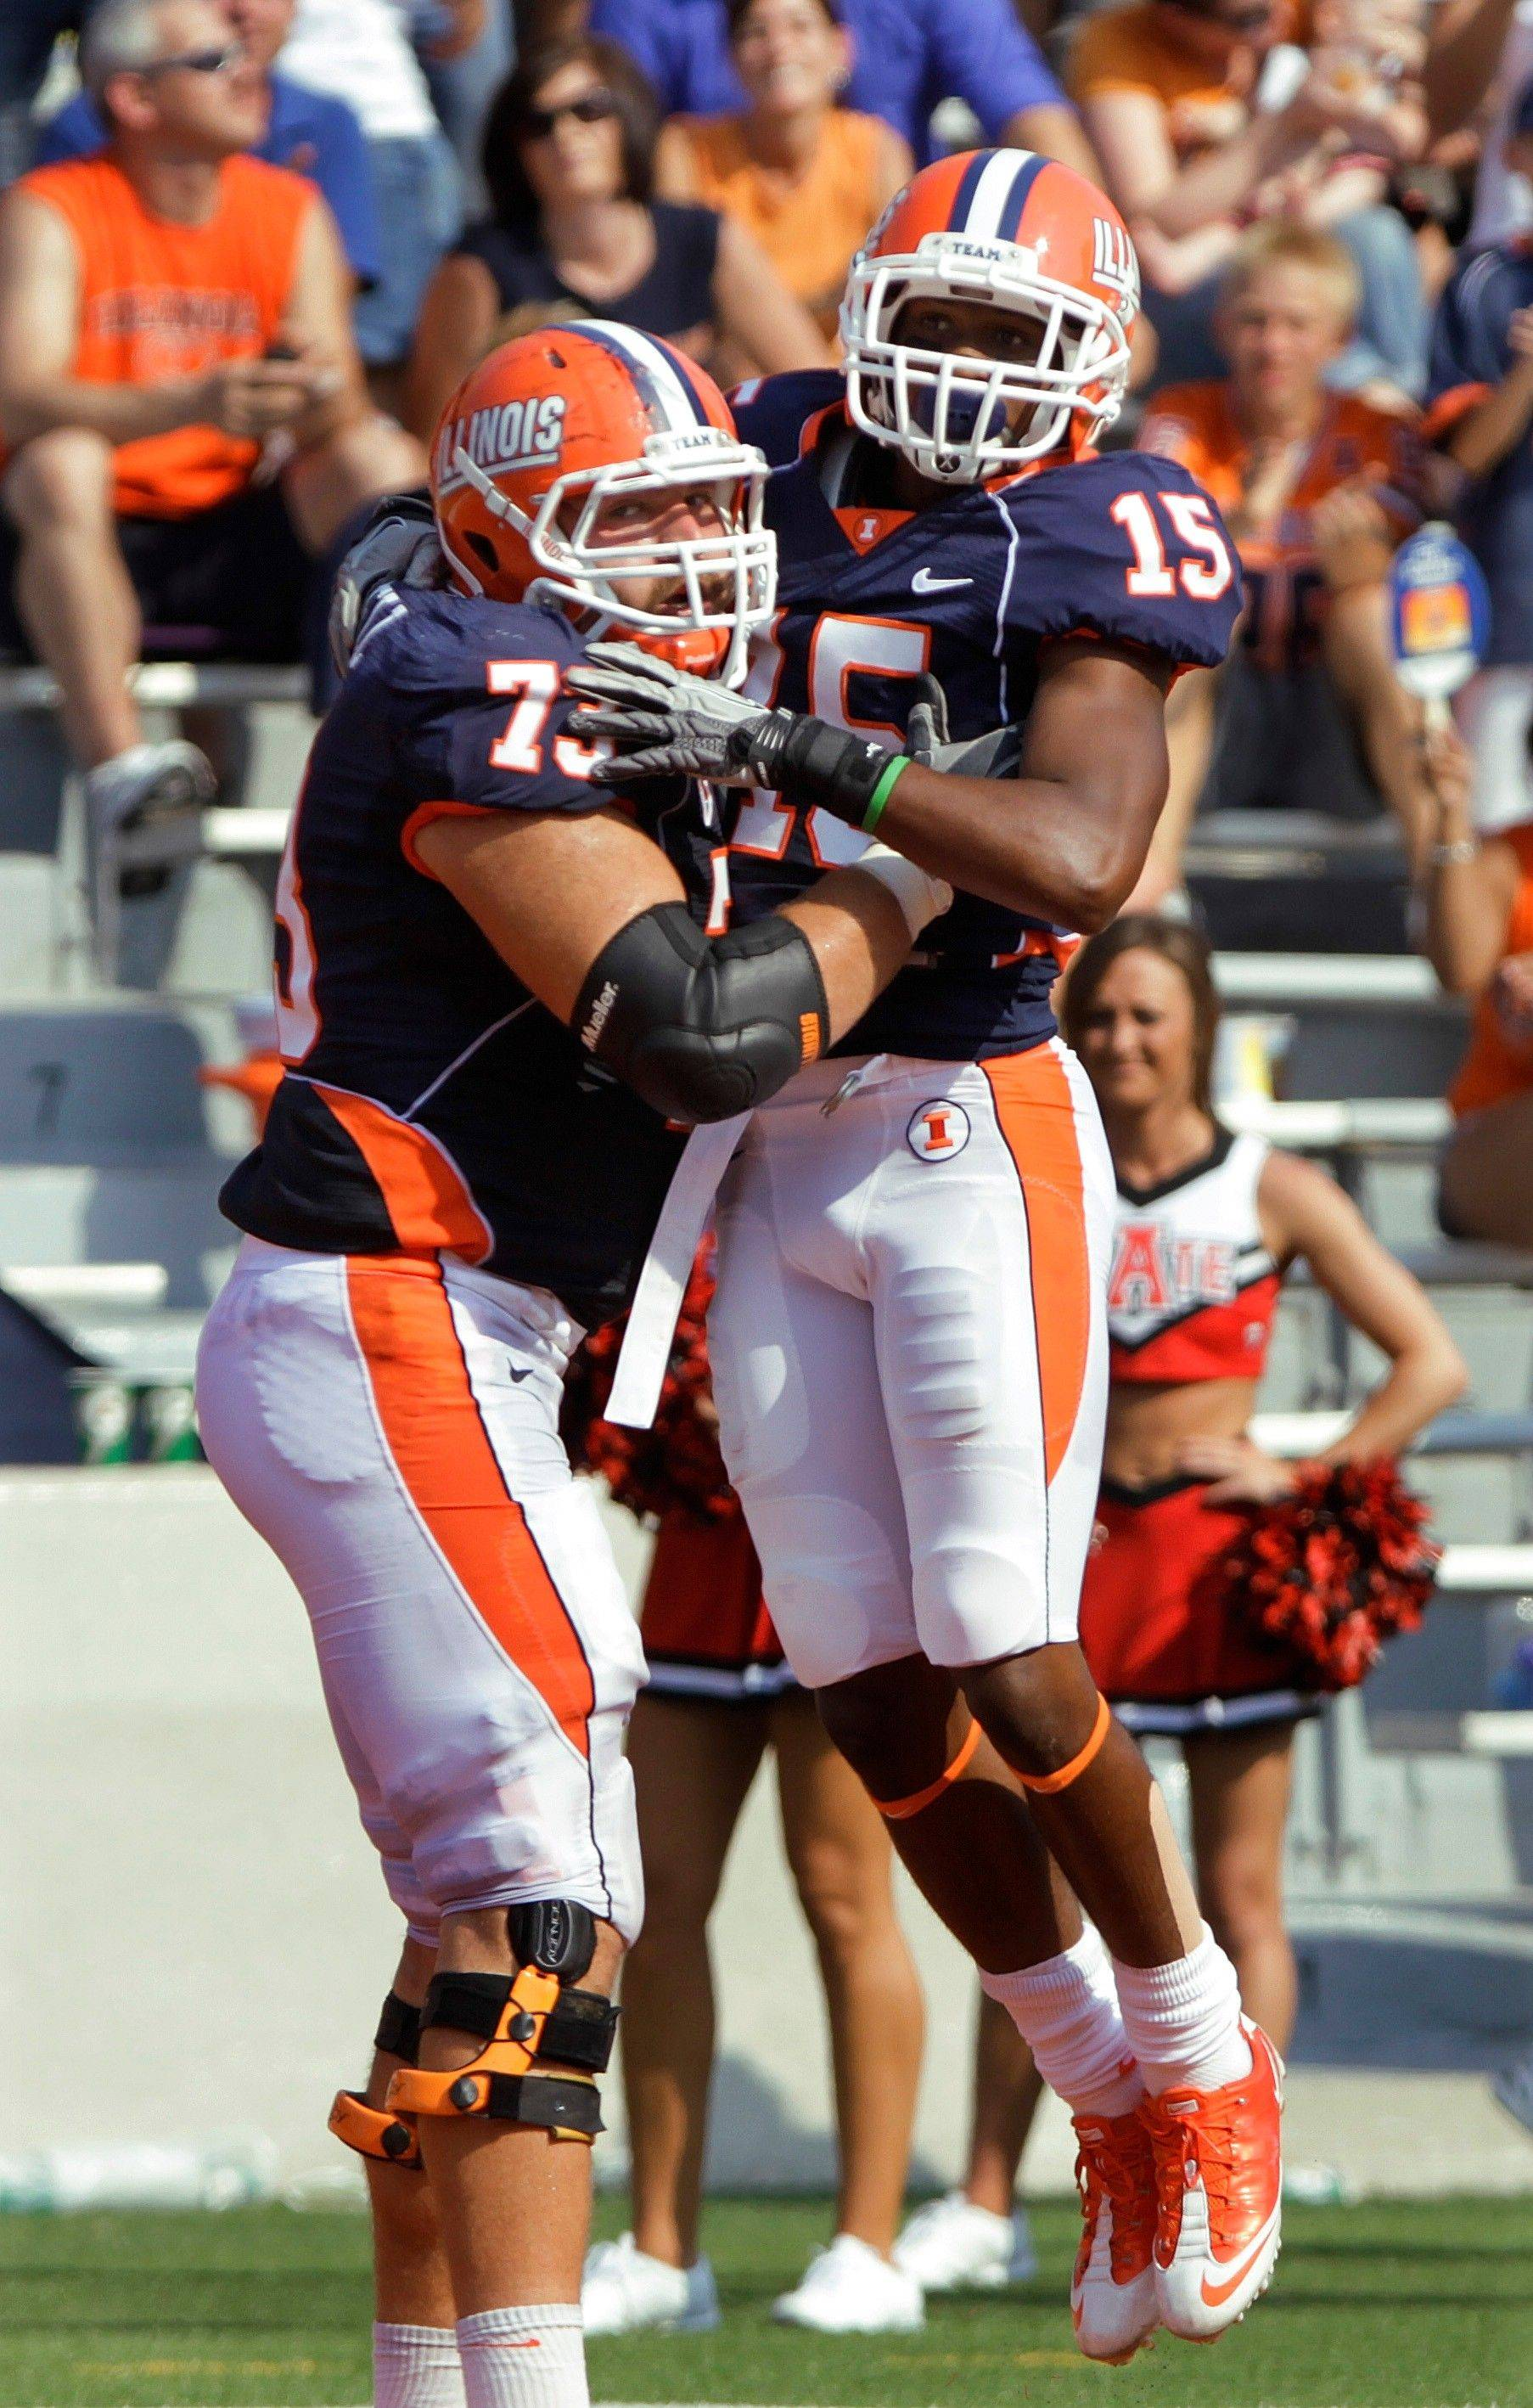 Darius Millines celebrates his touchdown on a long pass with offensive linesman Jack Cornell (73) during the second quarter of Illinois' 33-15 victory over Arkansas State.